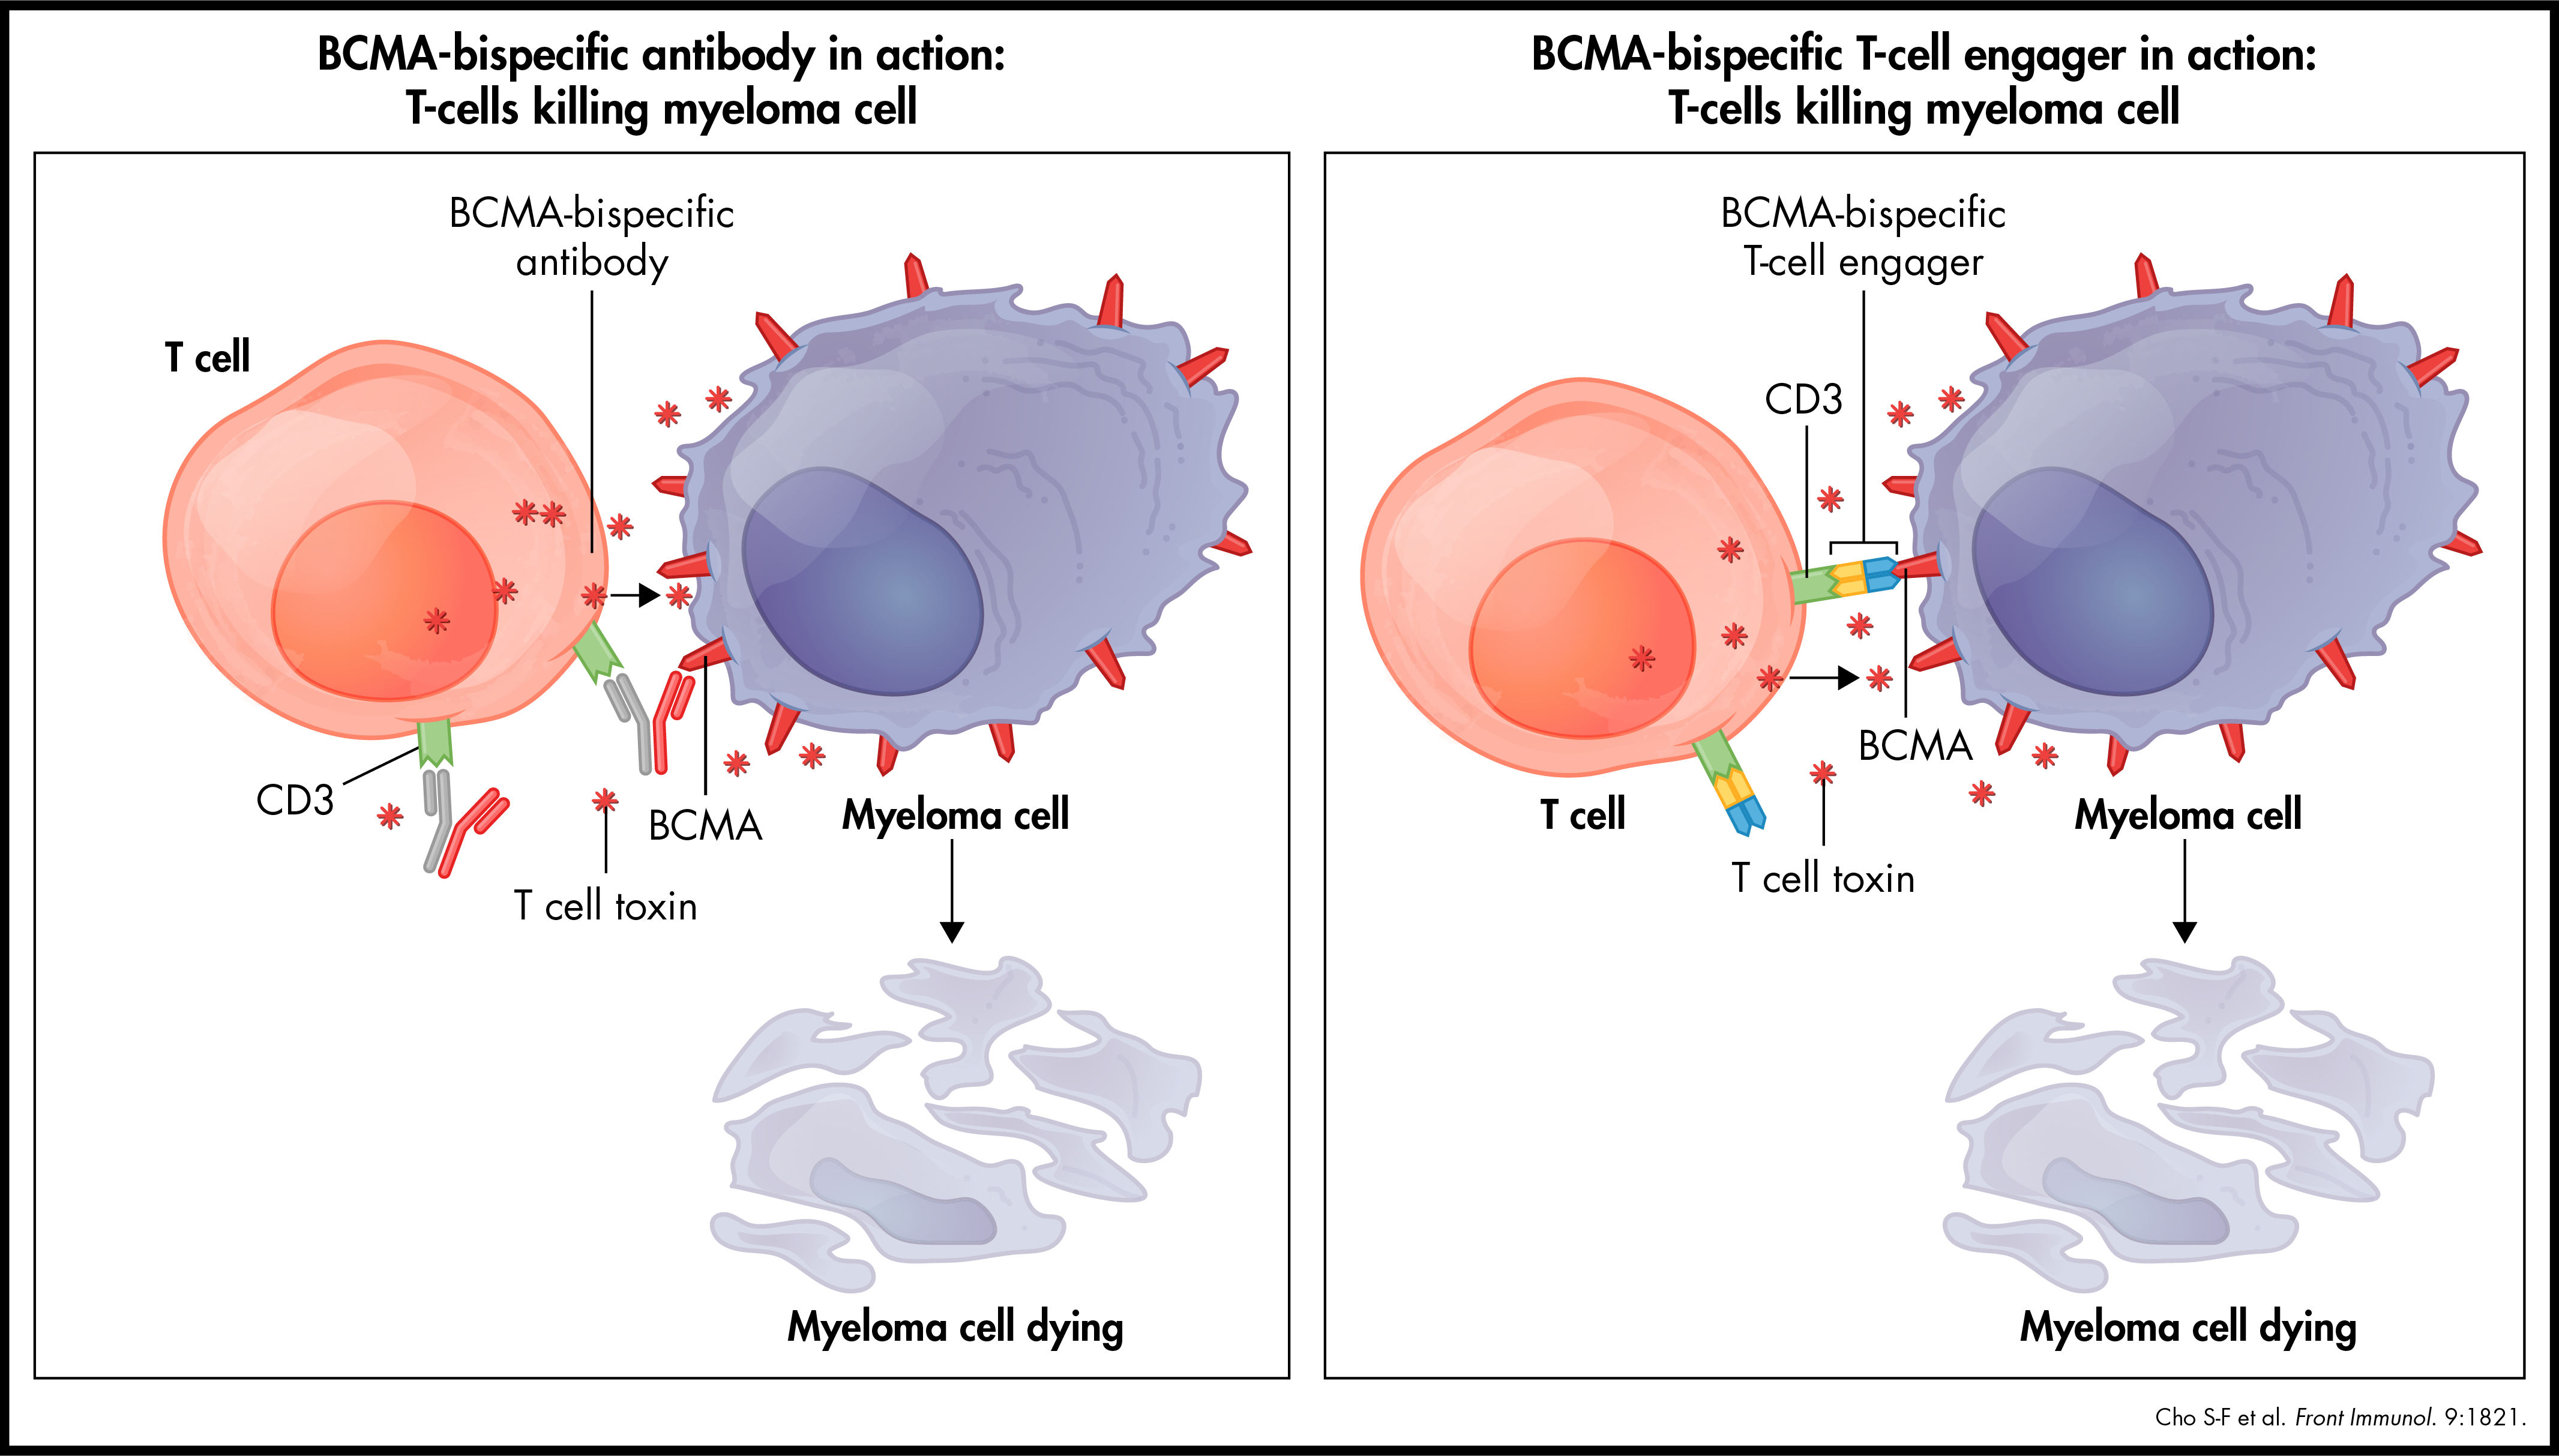 BCMA-bispecific antibody and T-cell engager in action: T-cells killing myeloma cell.